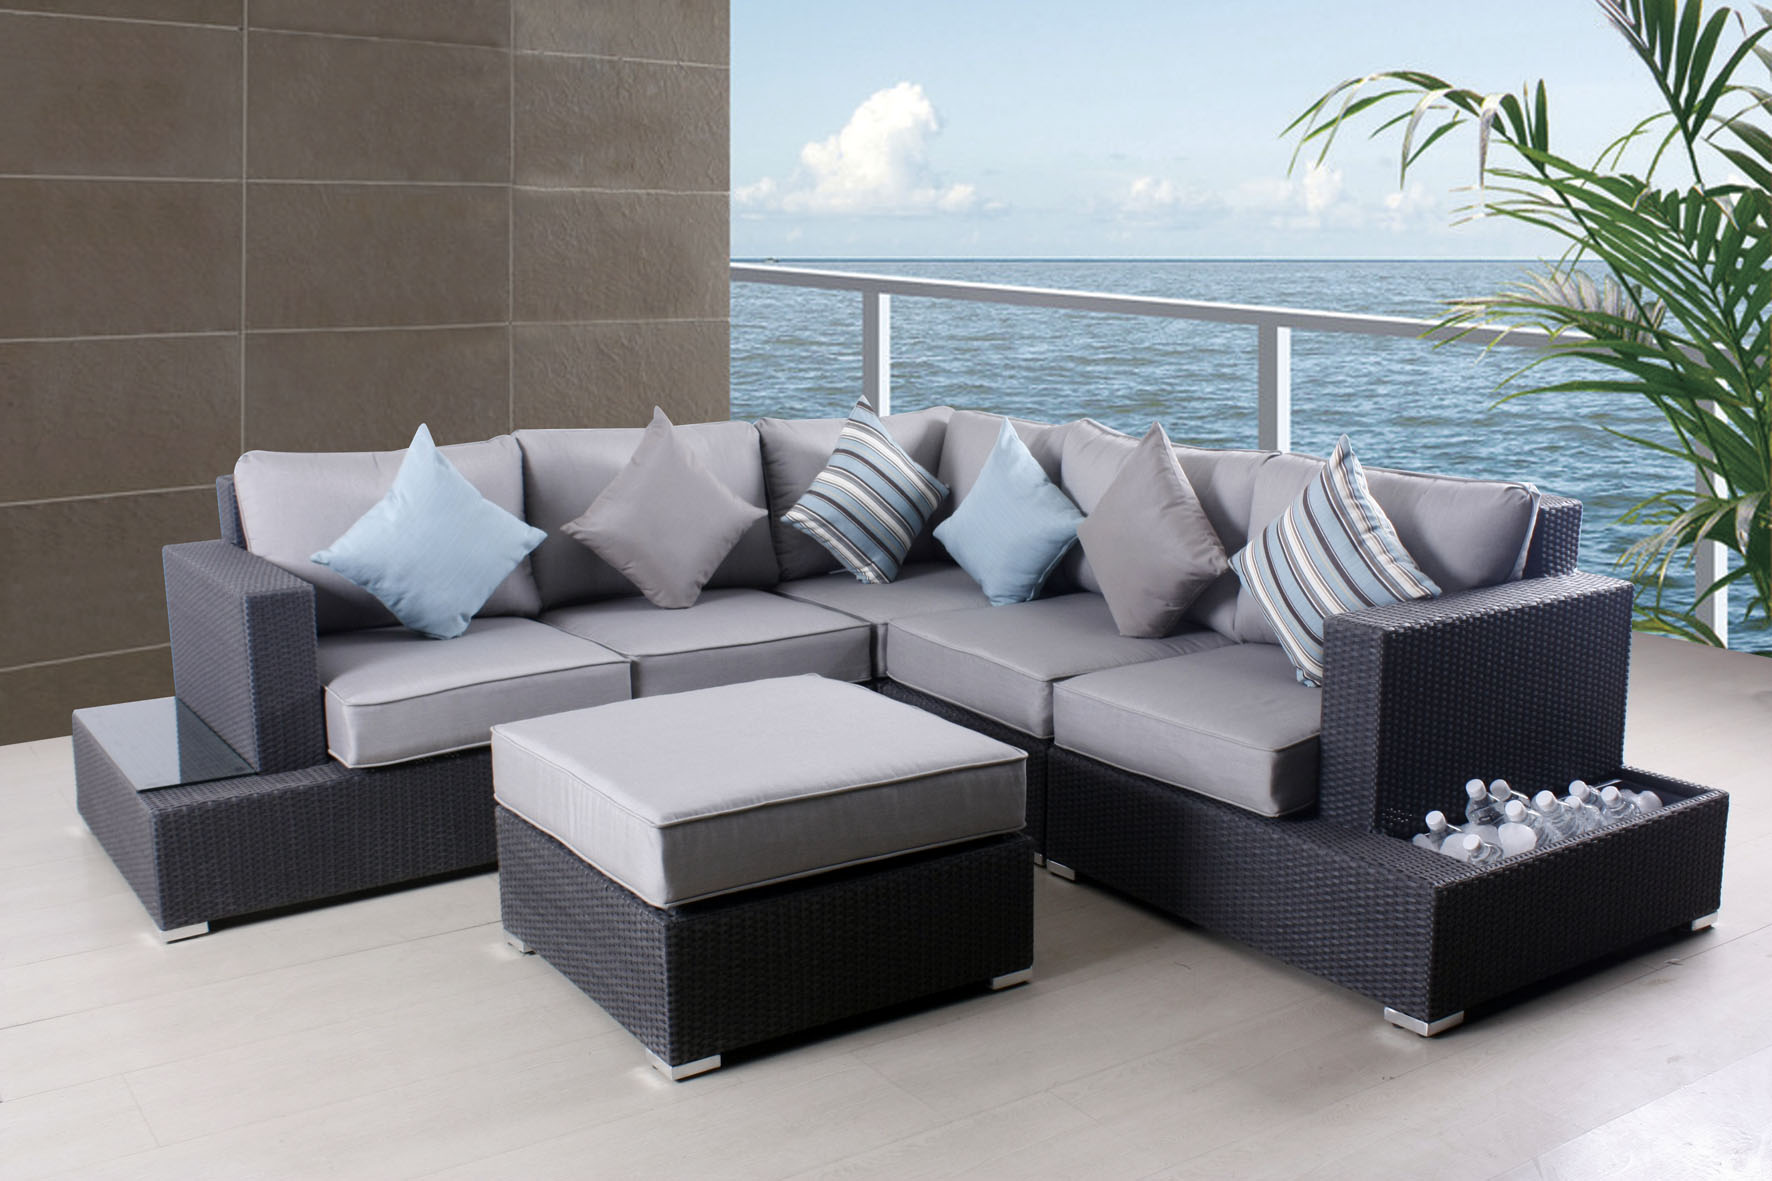 Clic Bamboo Foam Thomasville Outdoor Furniture Two Tone Colors Table Chair Set Blue Grey Stripped Cushions